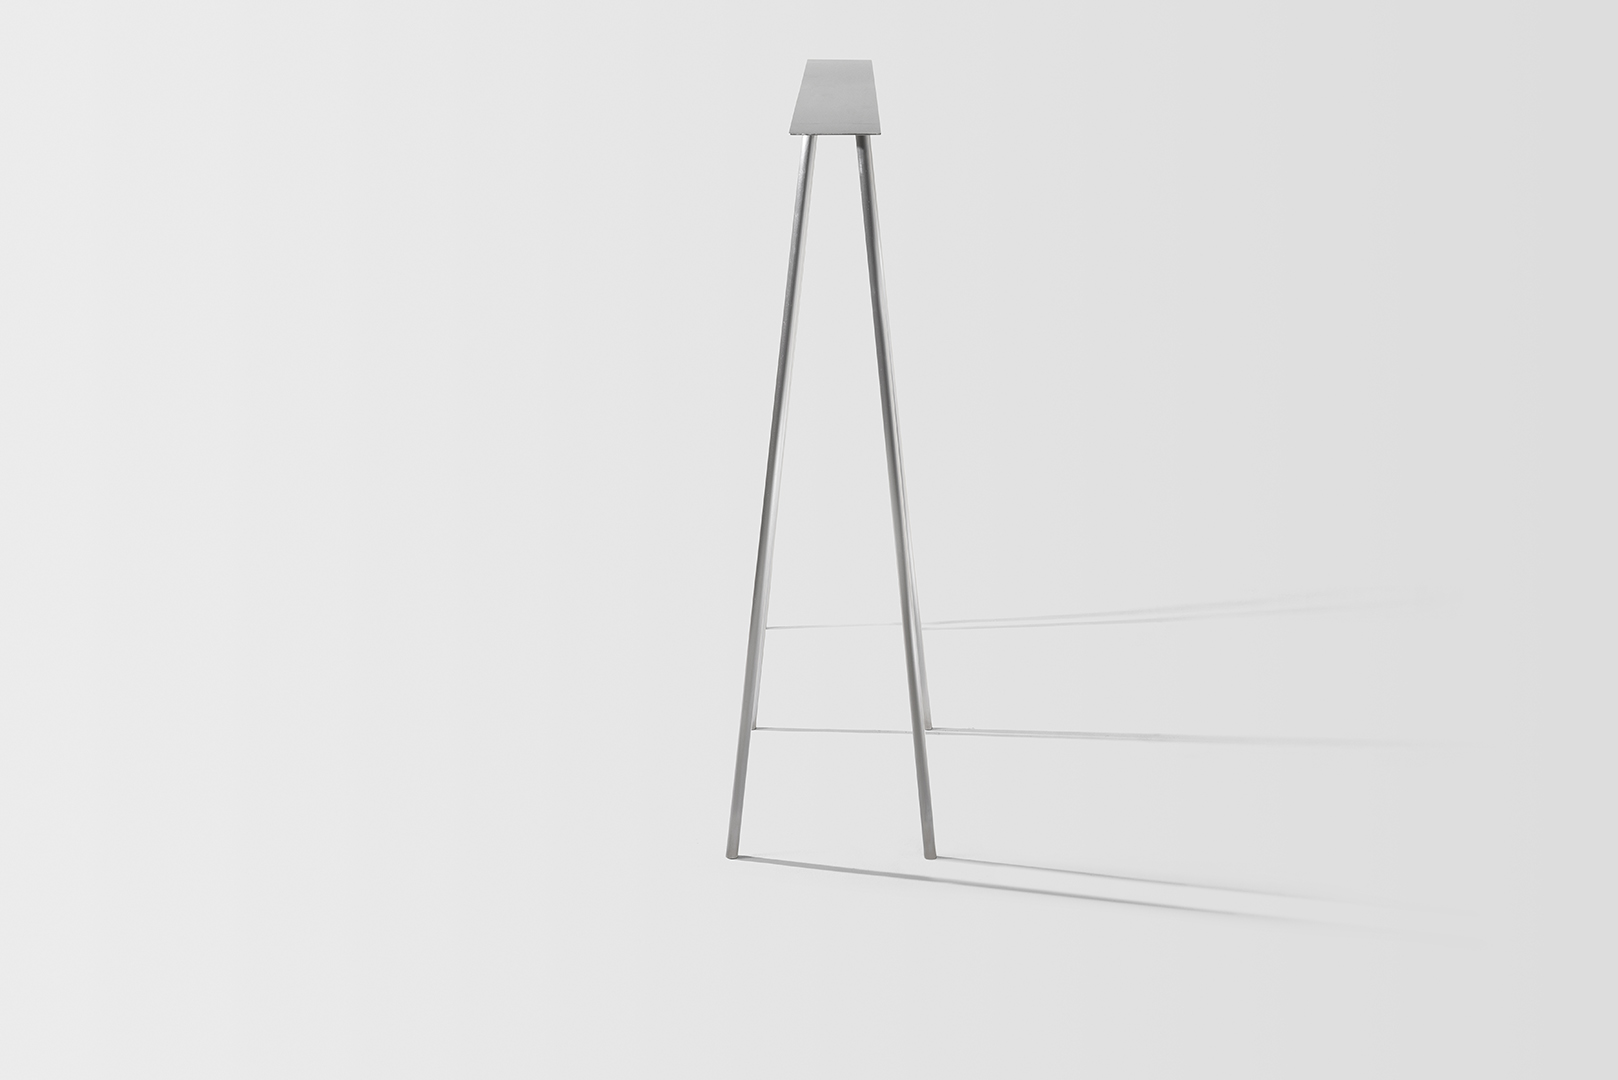 2018_PaperTable_Perspective_White_20.jpg